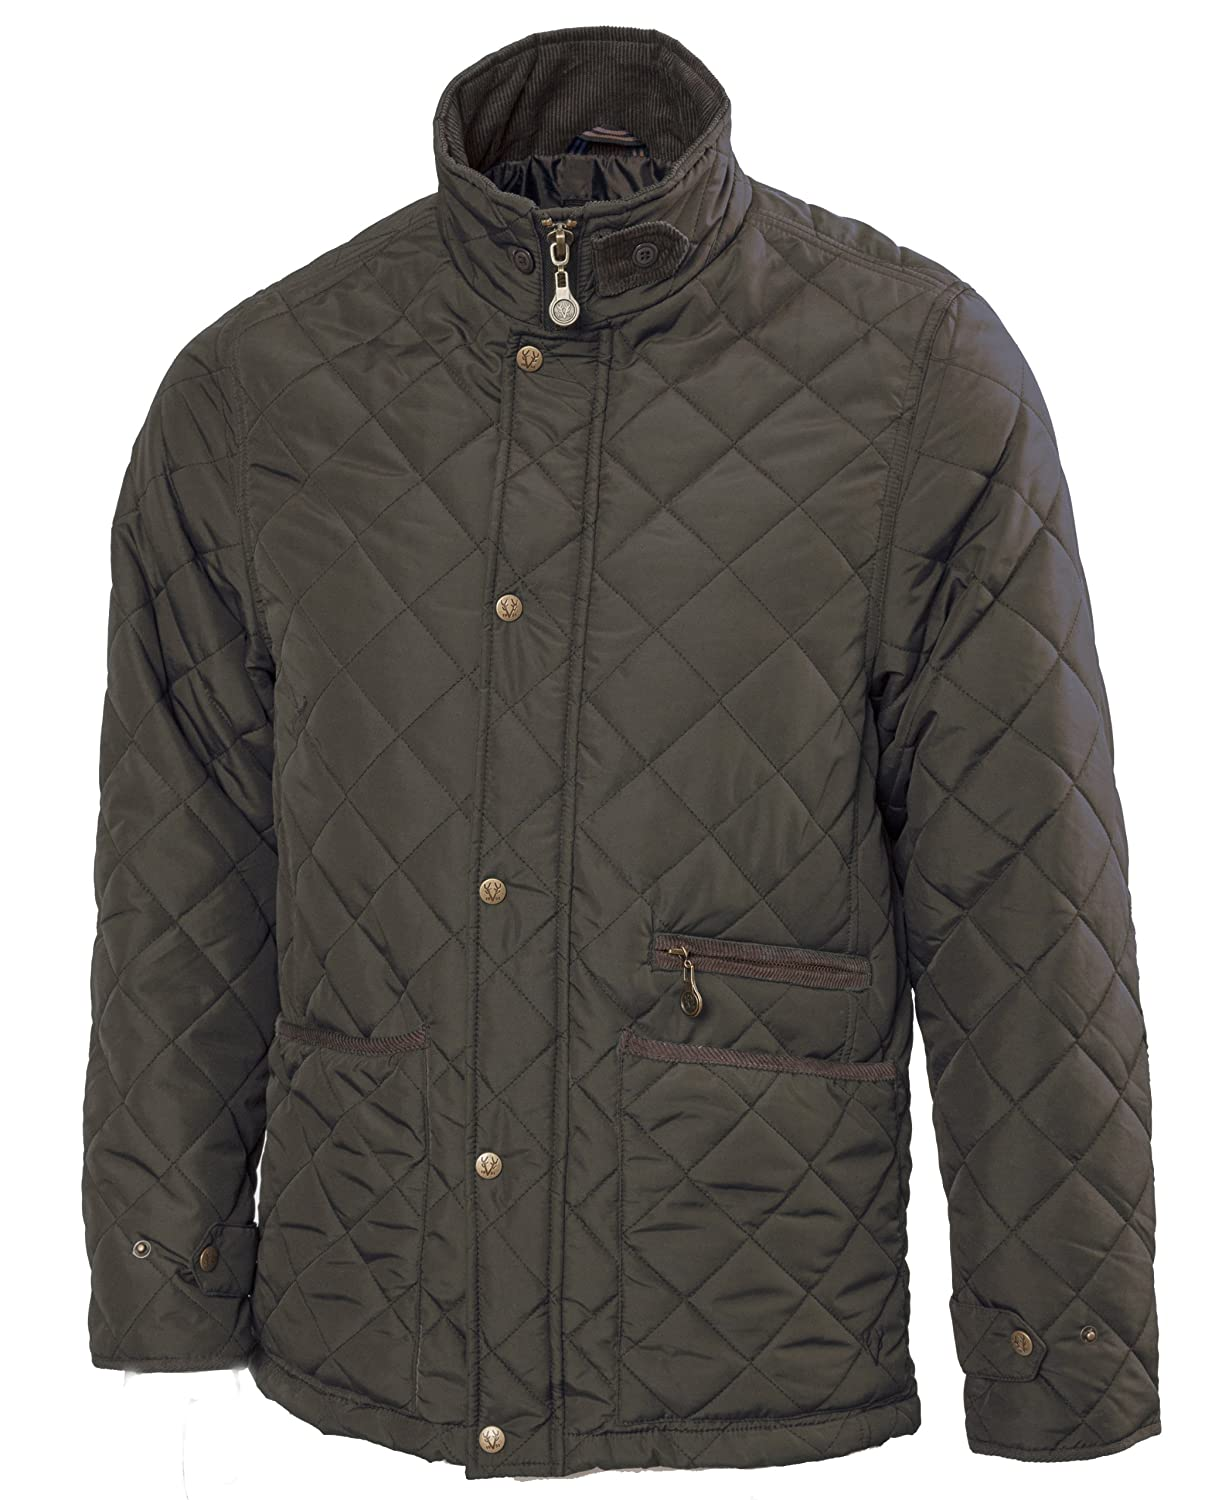 VEDONEIRE Mens GREEN Quilted Jacket (3039) padded quilt coat padded